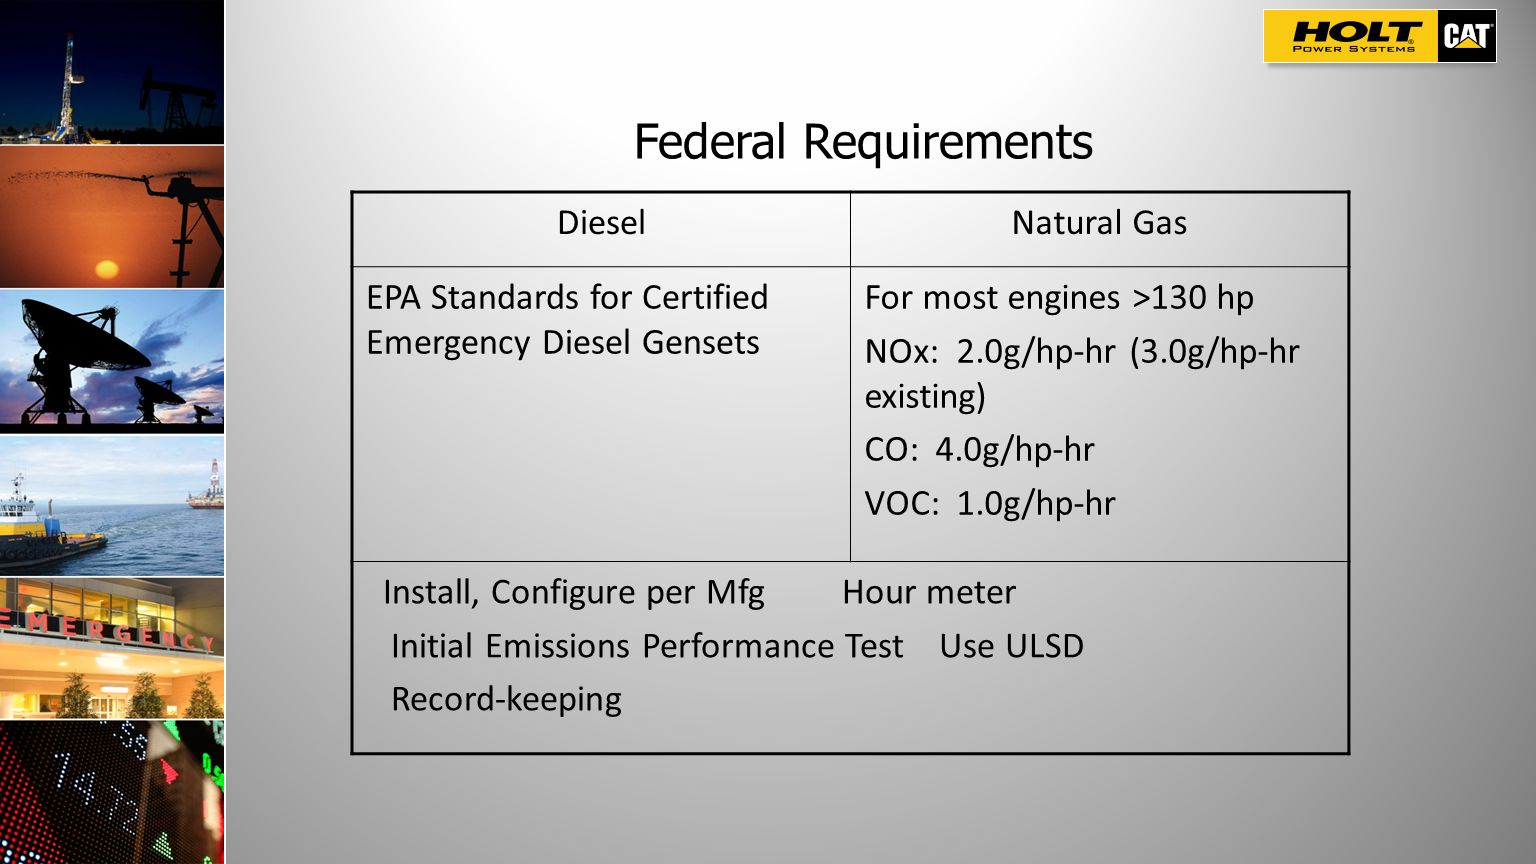 Federal Requirements DieselNatural Gas EPA Standards for Certified Emergency Diesel Gensets For most engines >130 hp NOx: 2.0g/hp-hr (3.0g/hp-hr exist